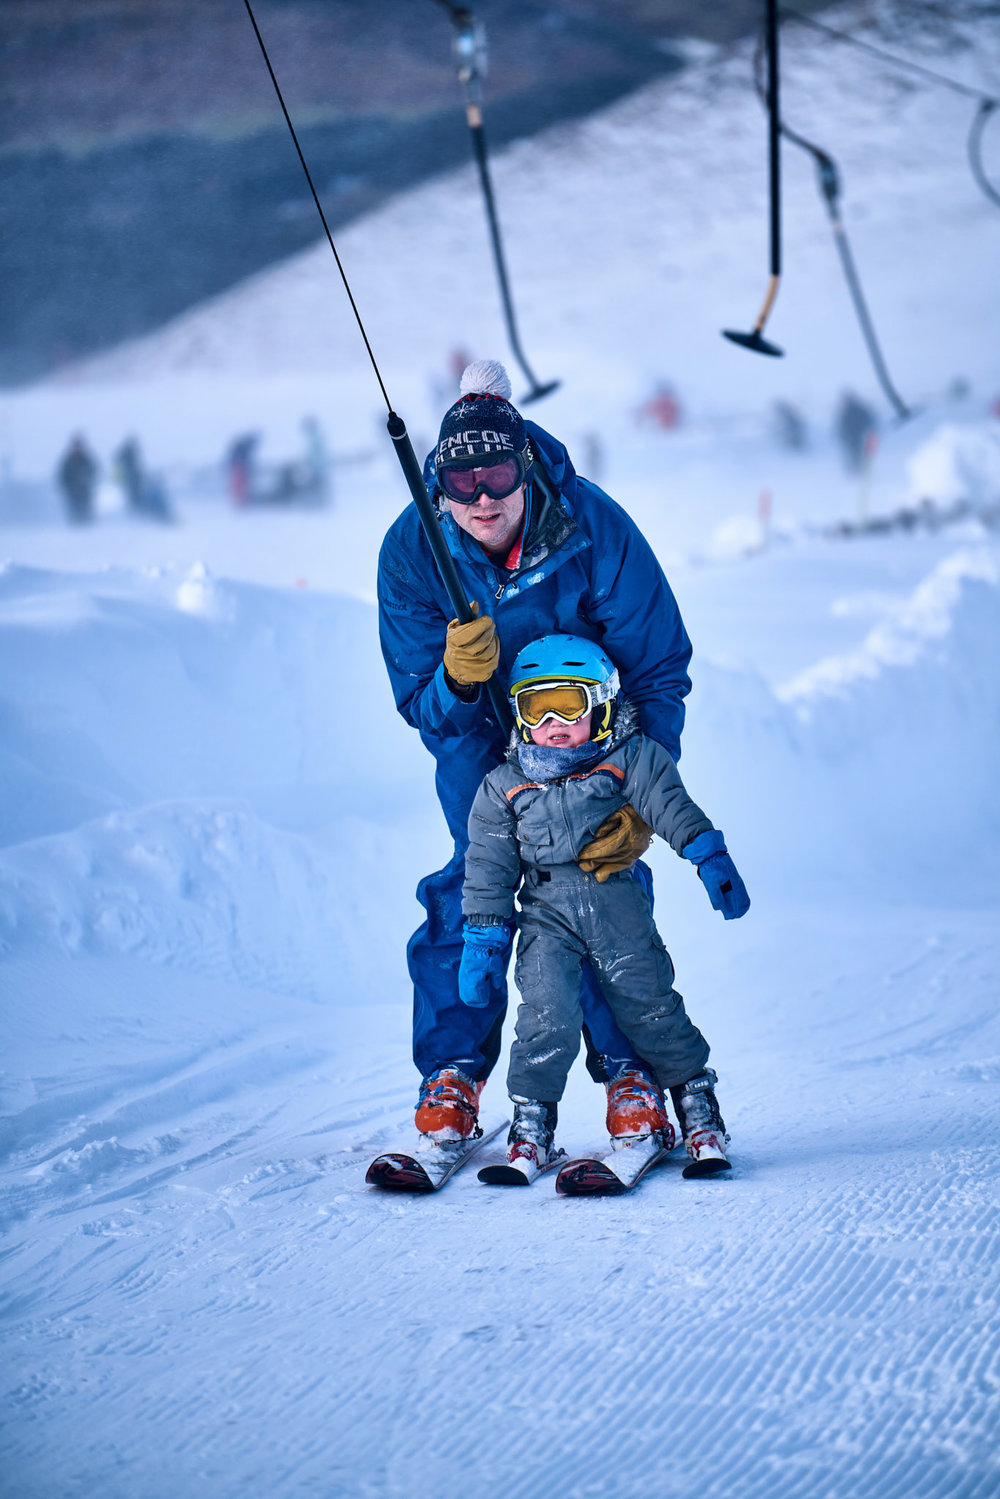 Doug Bryce and his son Murray (who probably stole the show in the film!), taking the tow lifts up at Nevis Range